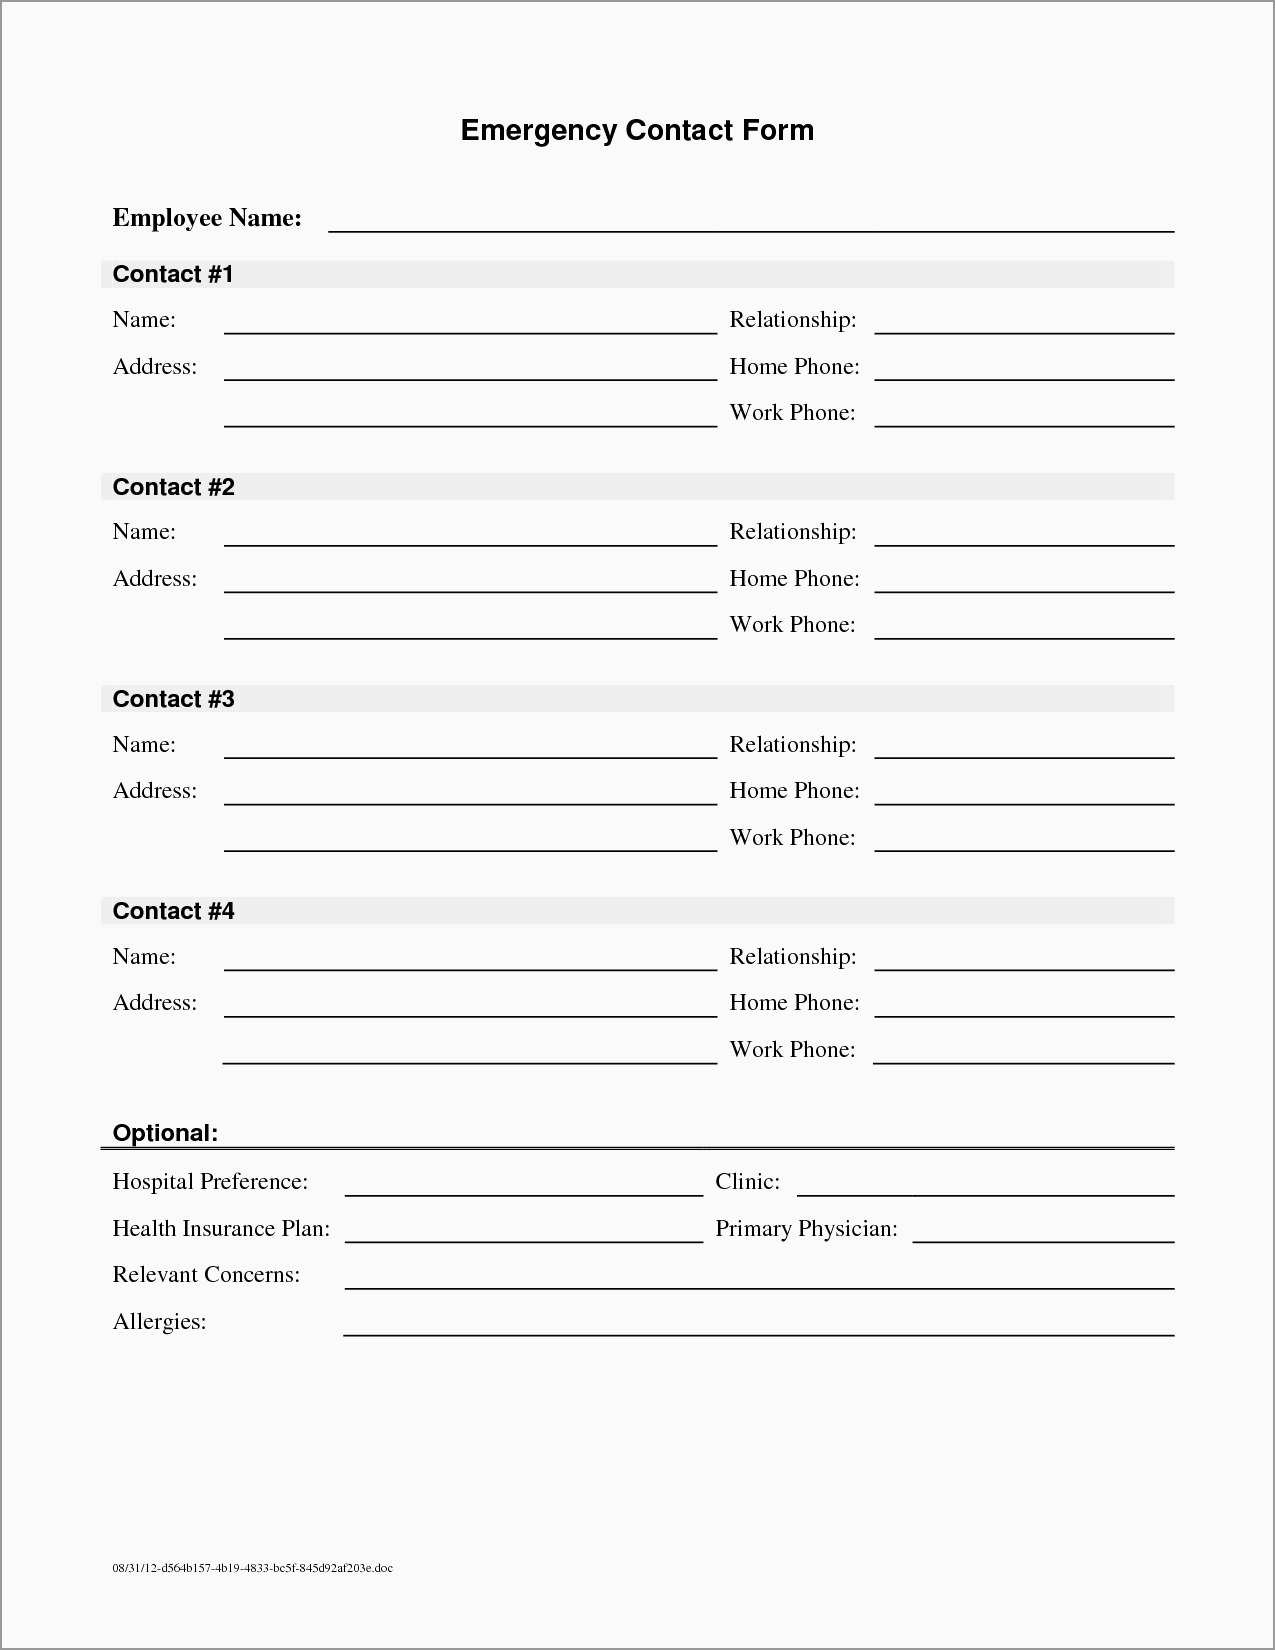 New Free Emergency Contact Form Template For Employees | Best Of - Free Printable Contact Forms